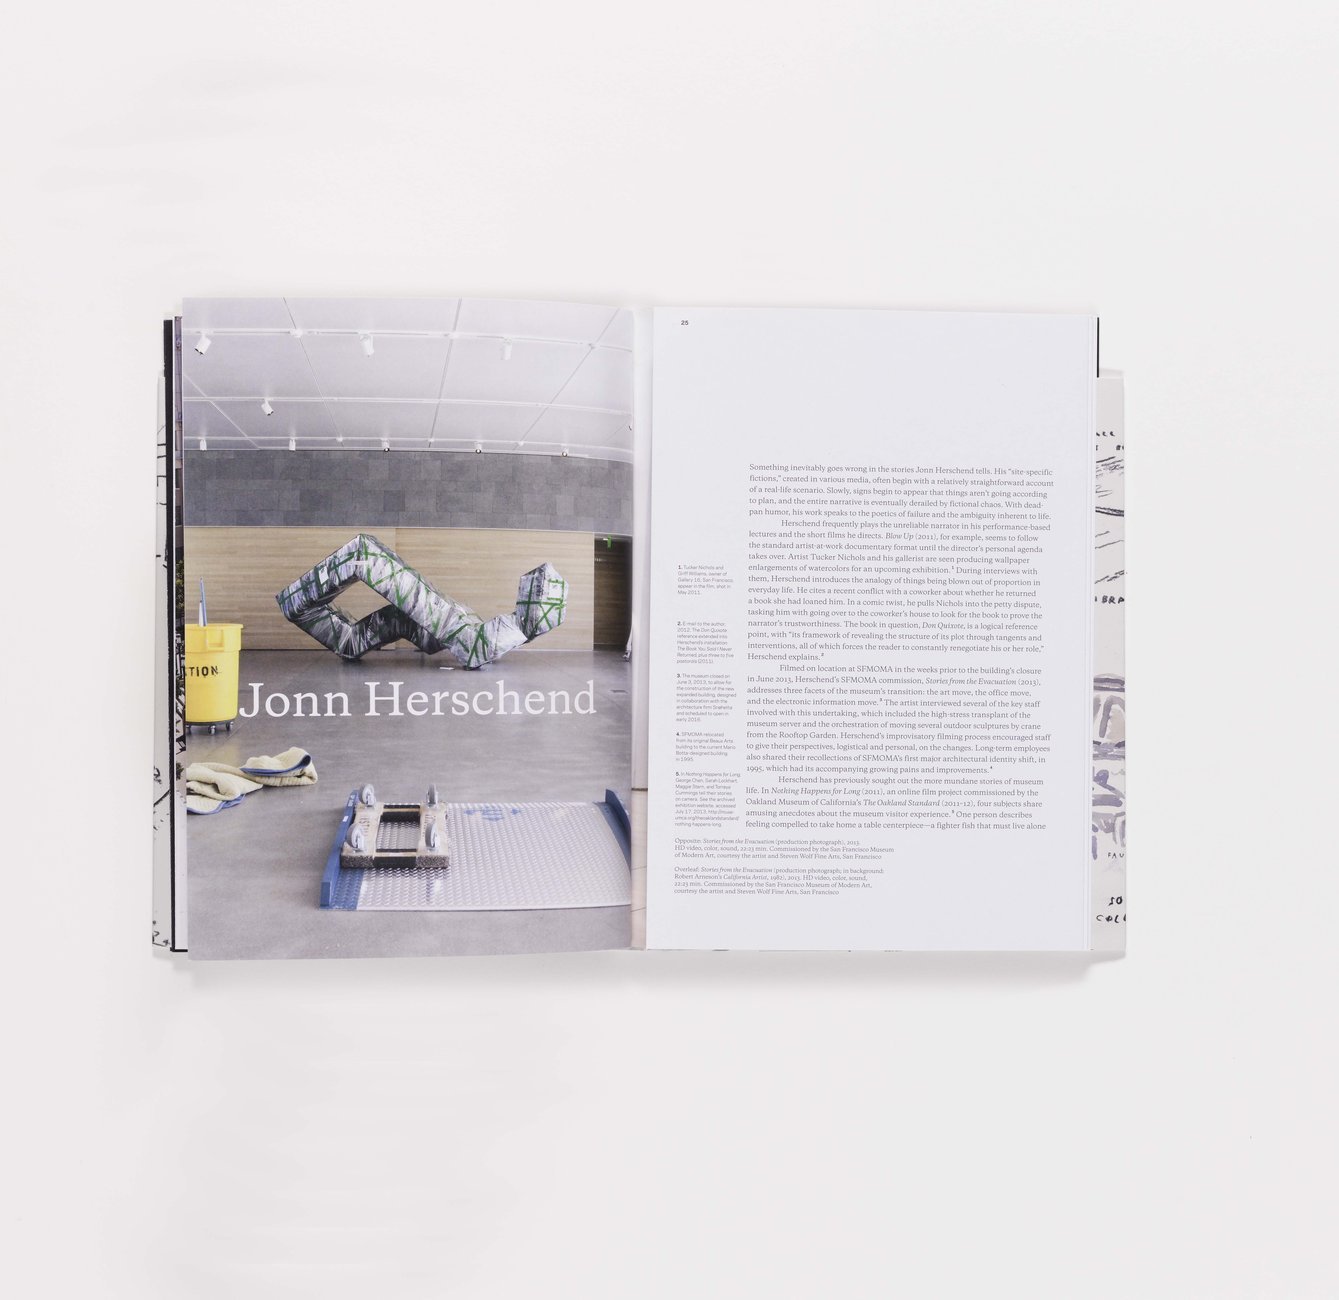 2012 SECA Art Award publication folding pages 24-25 (closed)